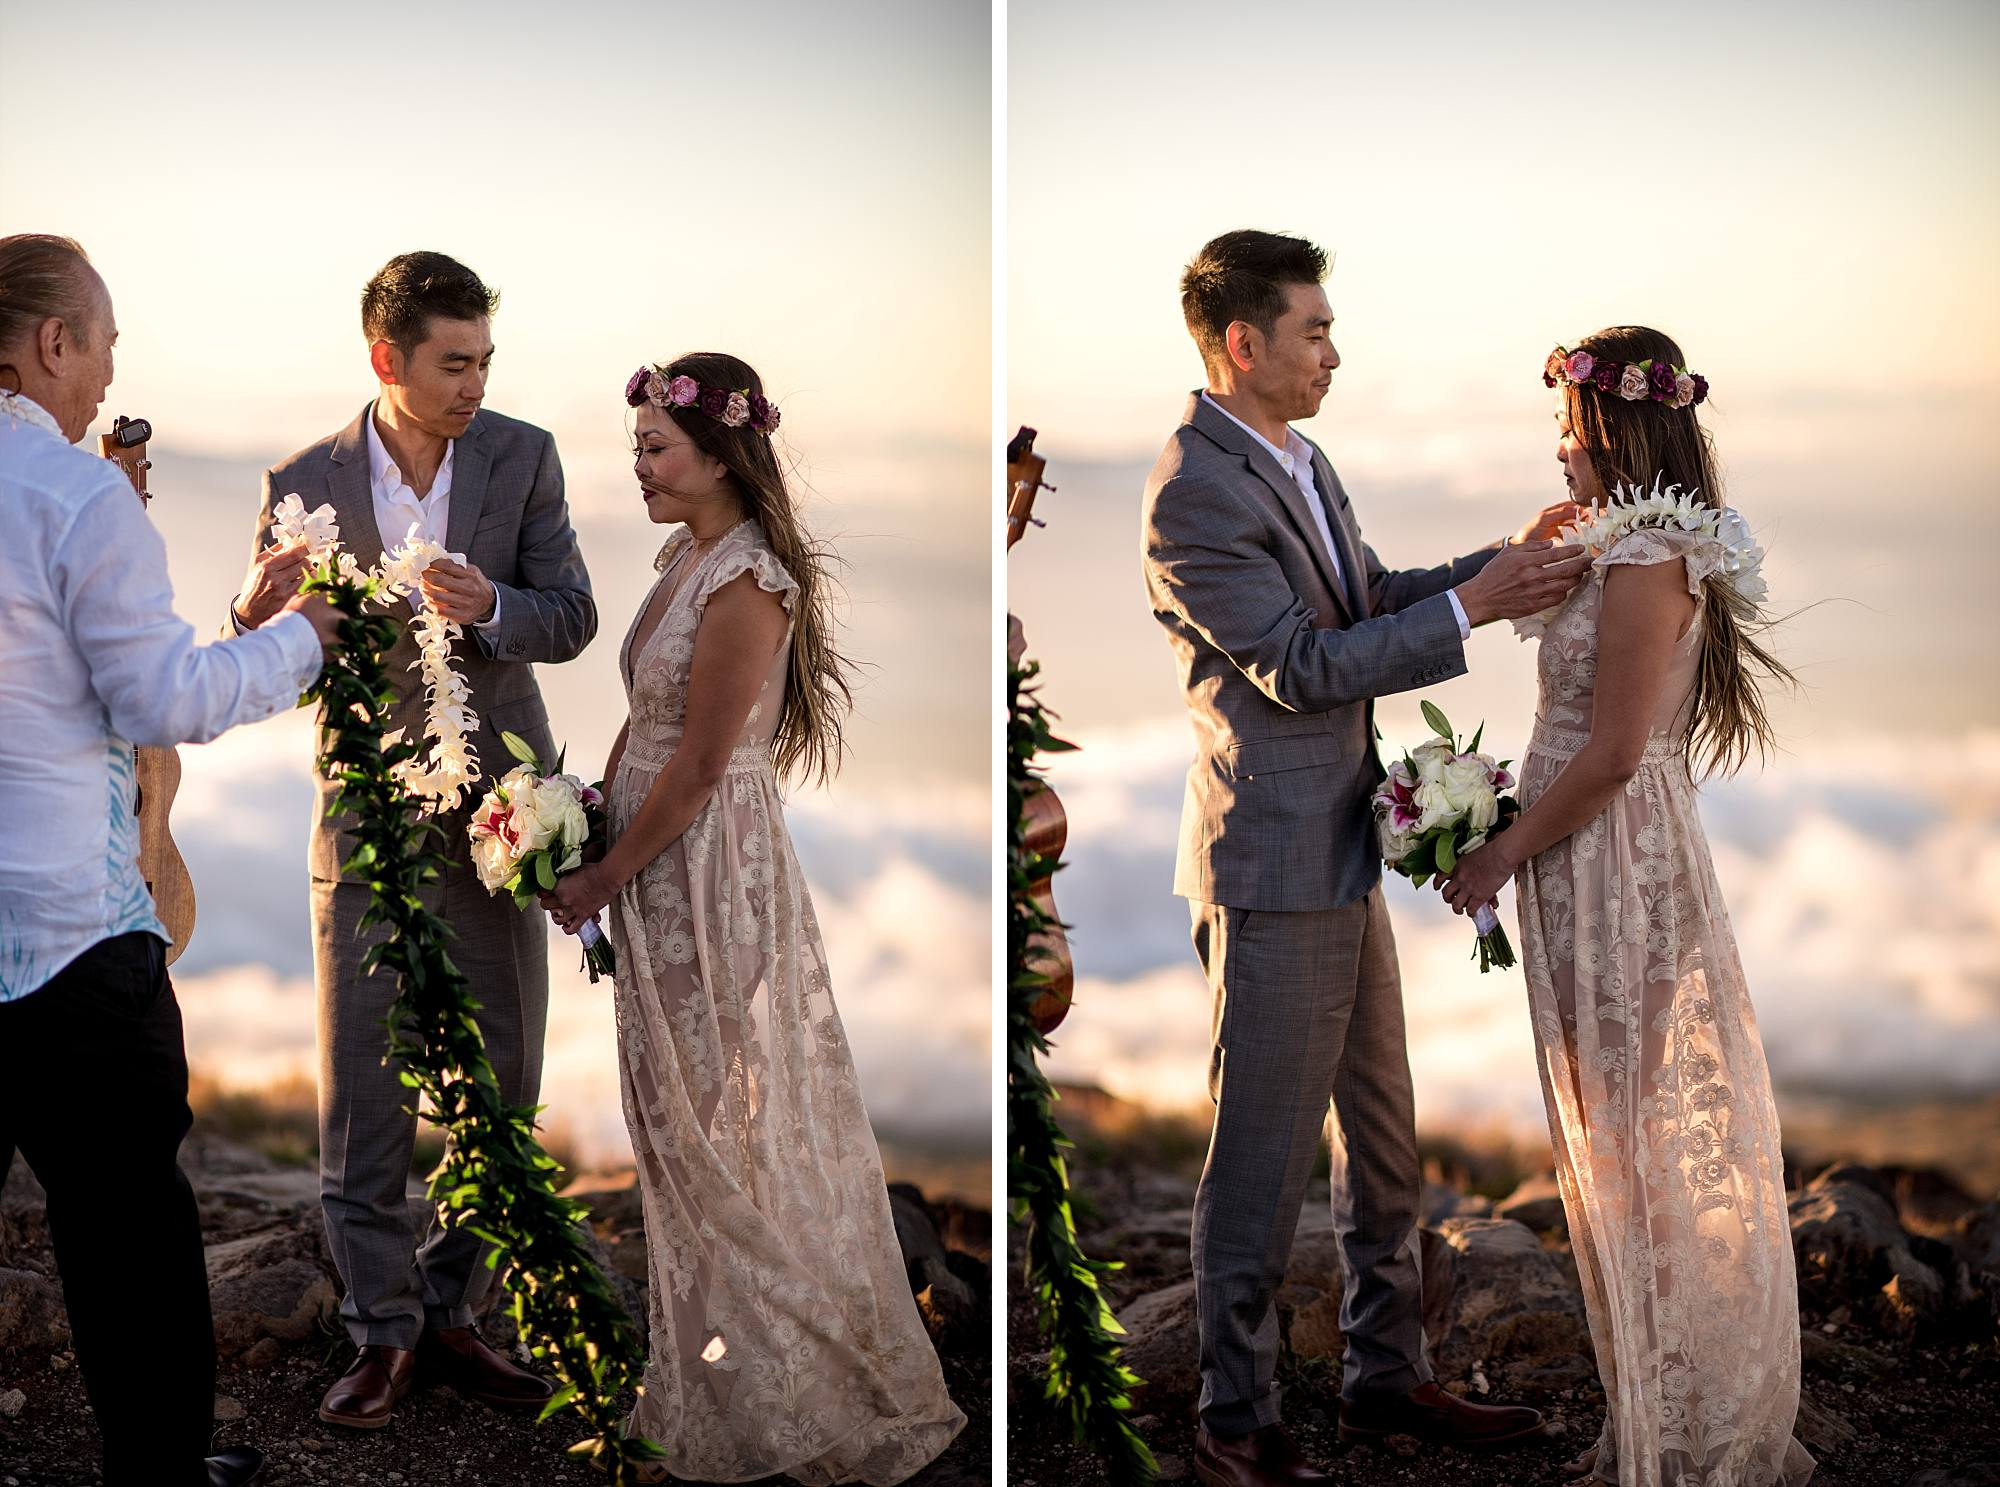 couple presenting leis to each other at their wedding